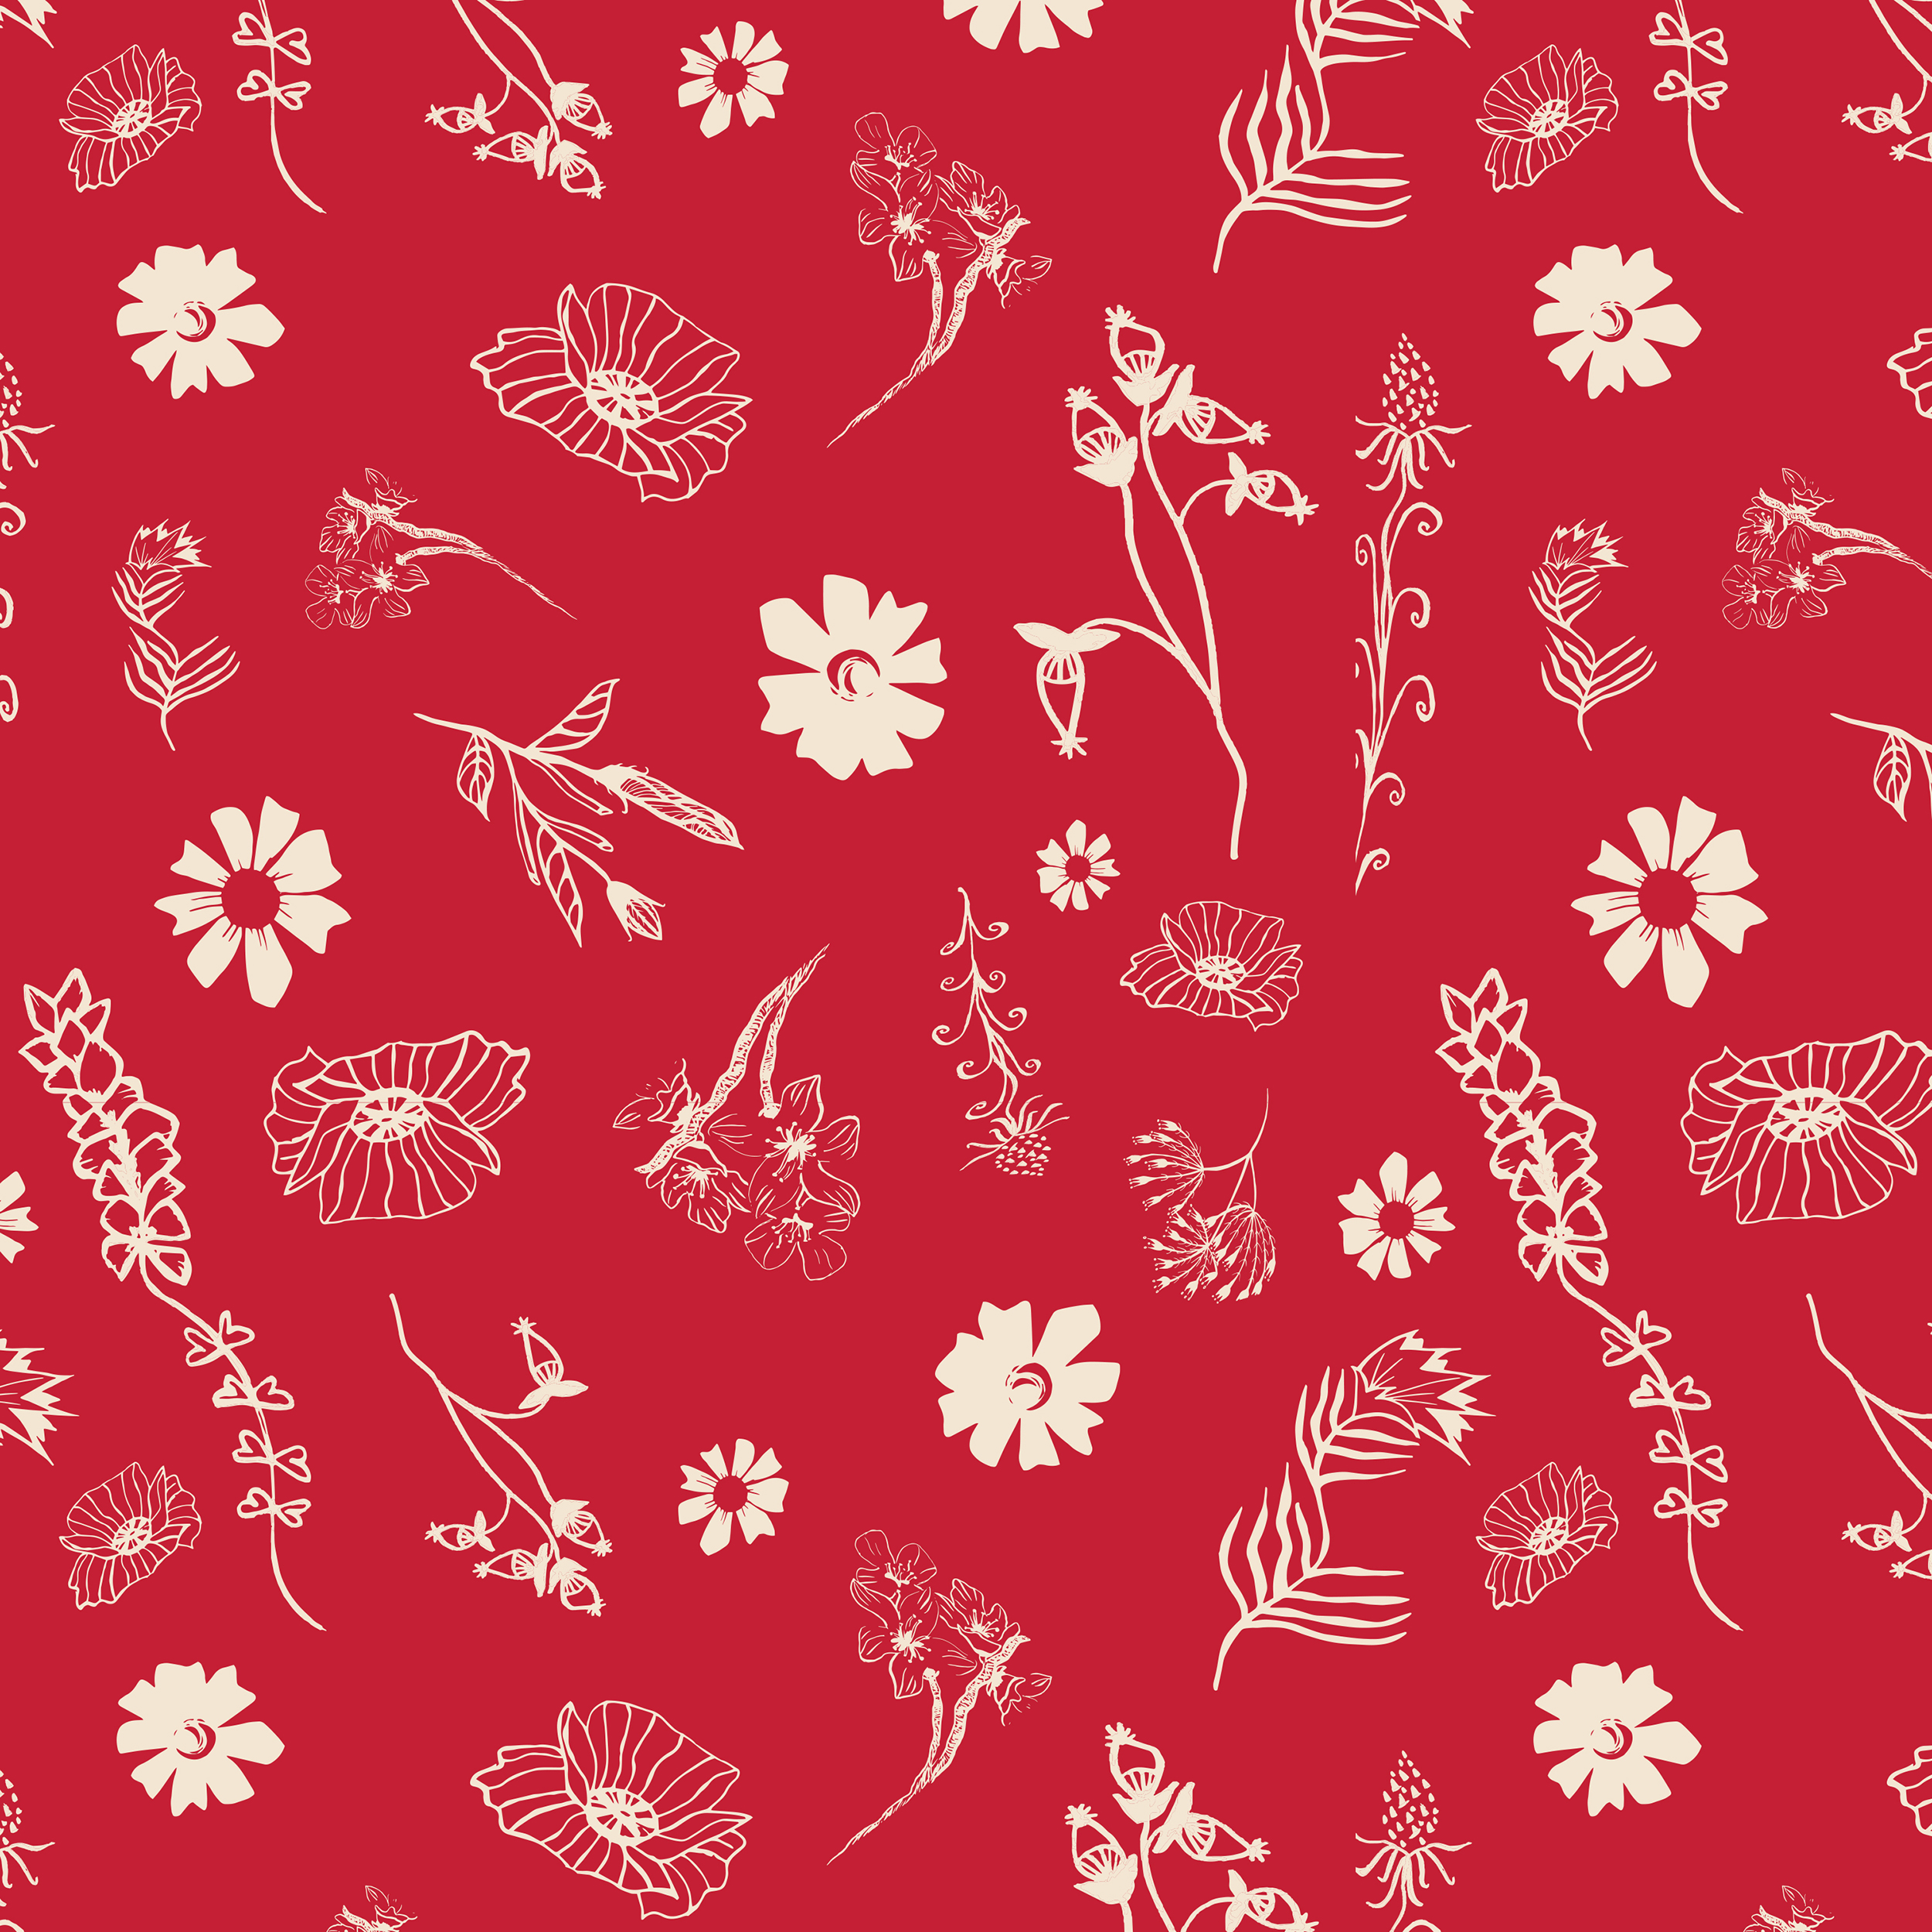 HomelandFloralSketch-red-PT.jpg